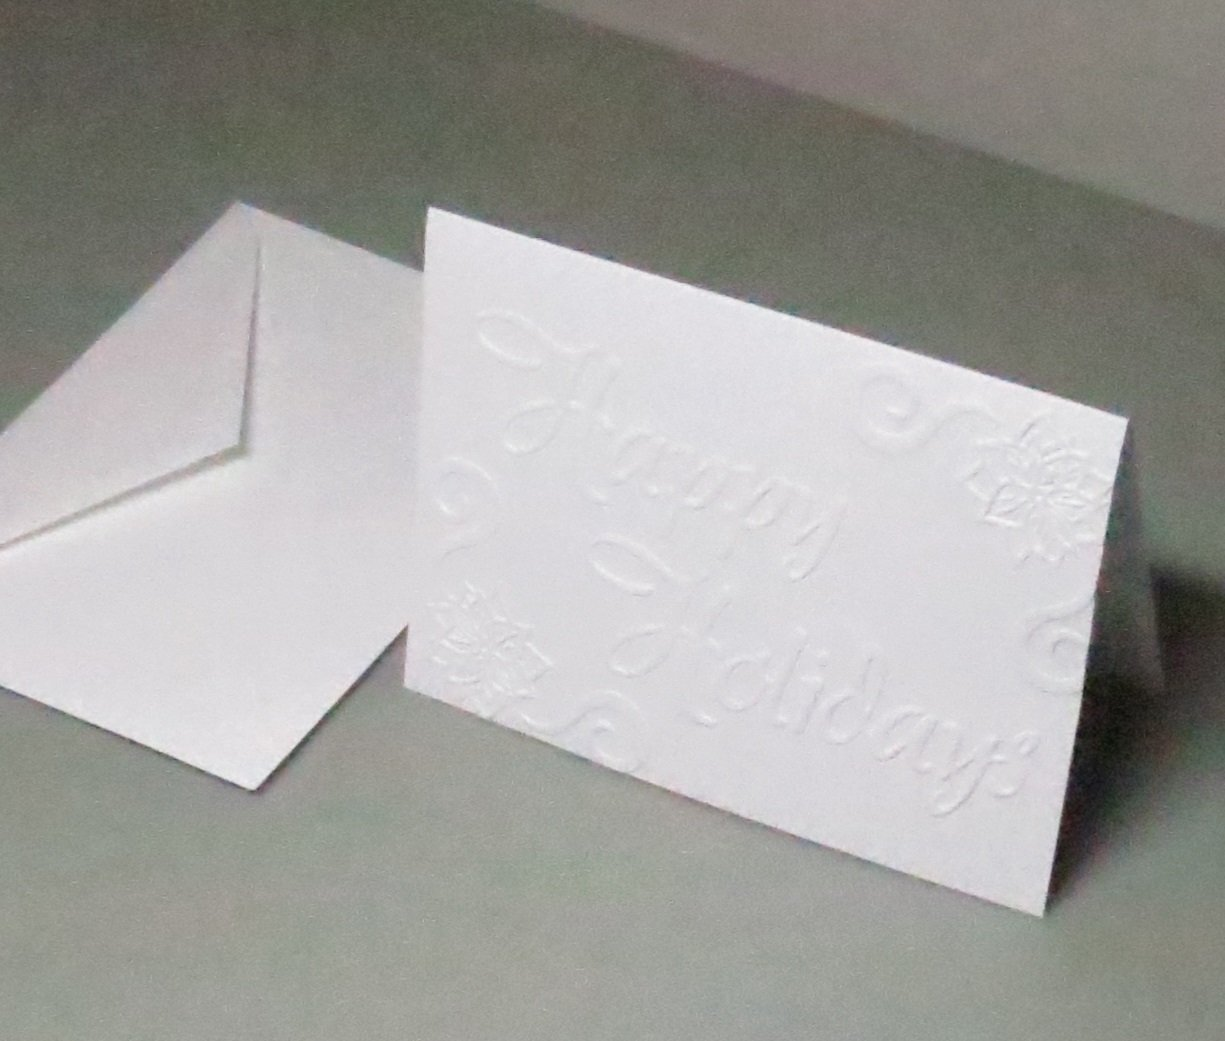 Handmade Happy Holidays Embossed Blank Christmas Note Cards from 250gsm English Pure White Matte Cardstock Set of 10 Cards /& Envelopes 4 1//8 x 5 1//2 inches